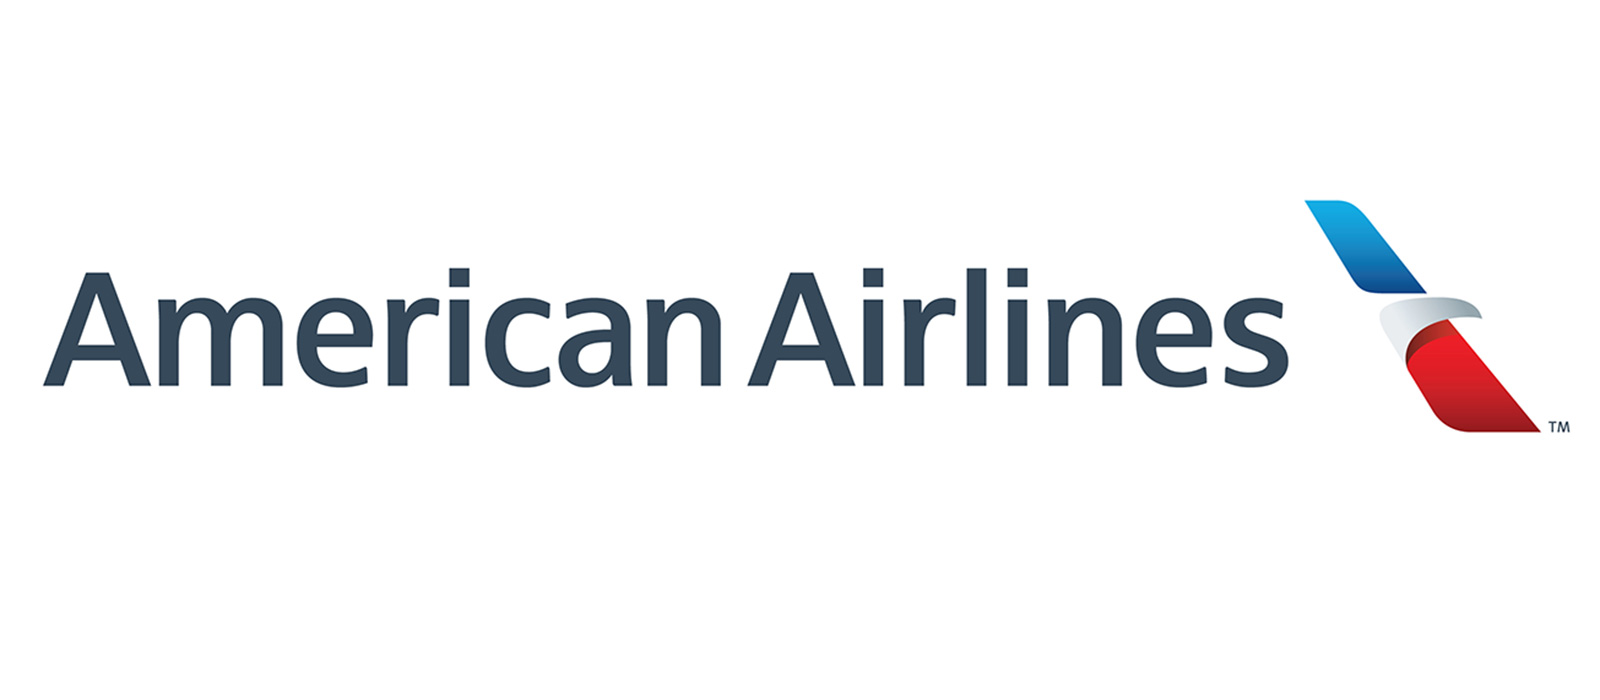 American Airlines will stop flights to 15 cities from October